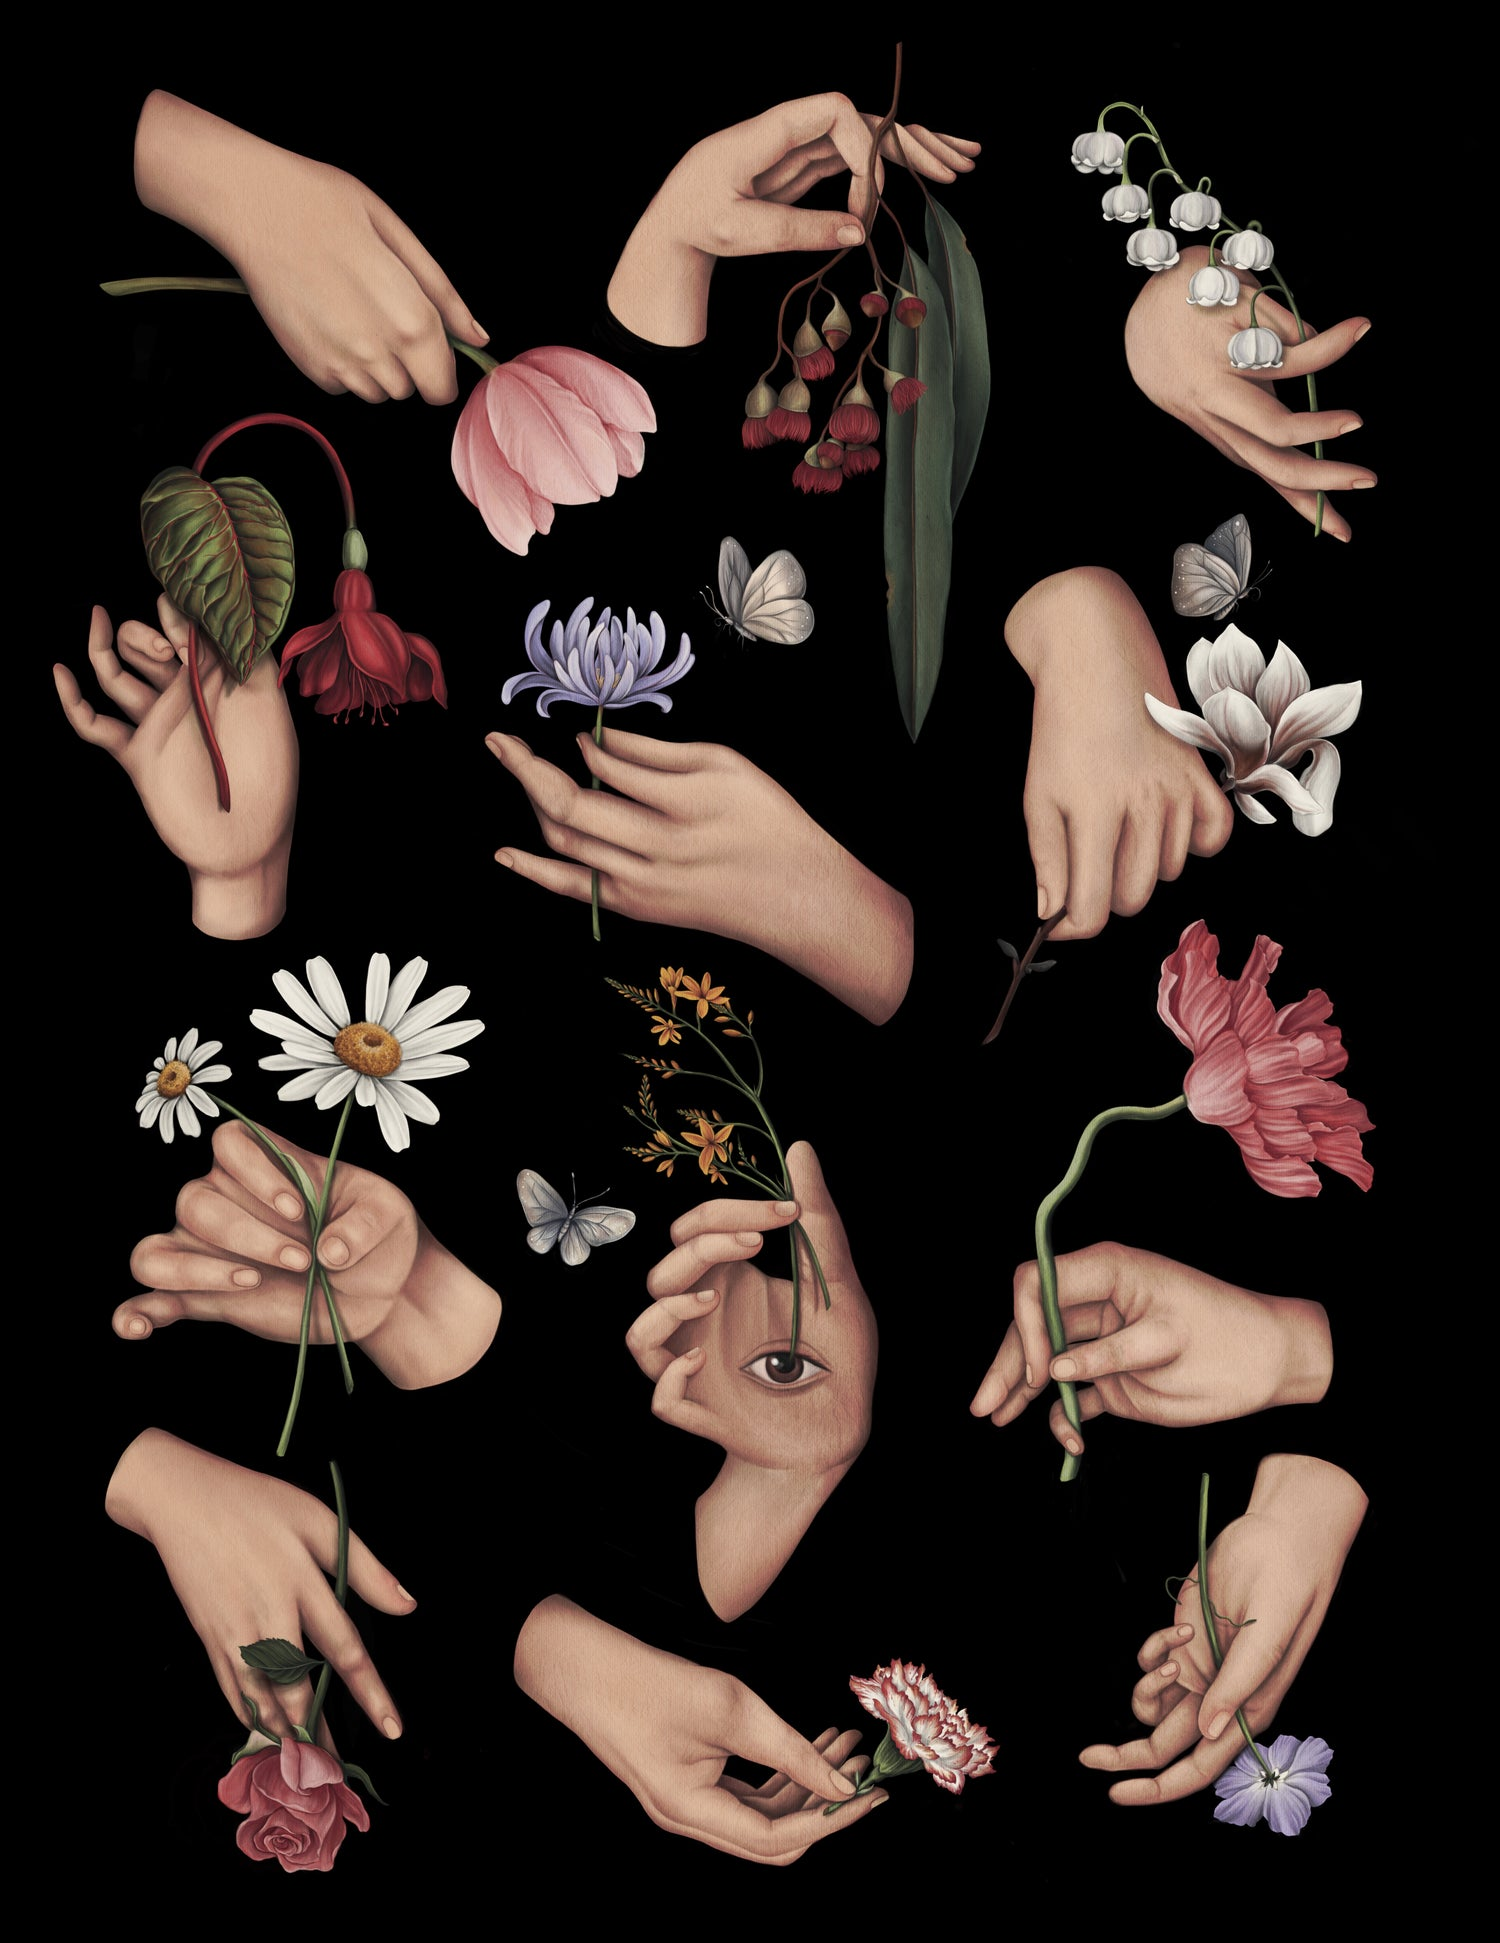 12 ways of holding a flower